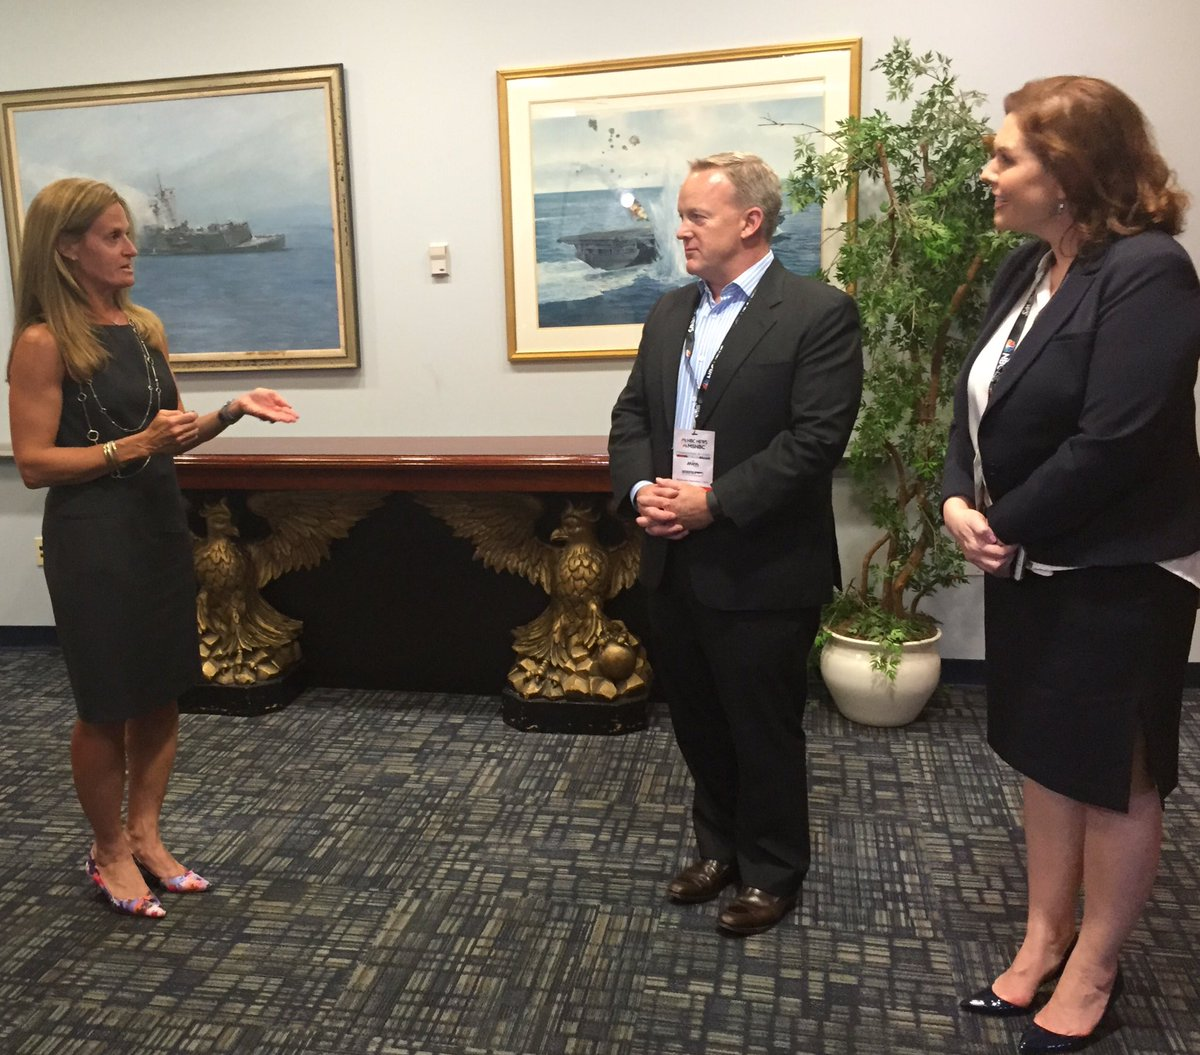 It's official. coin toss with @seanspicer, @kristina_schake determines @realDonaldTrump will go 2nd #NBCNewsForum https://t.co/R5Lip1MaBQ